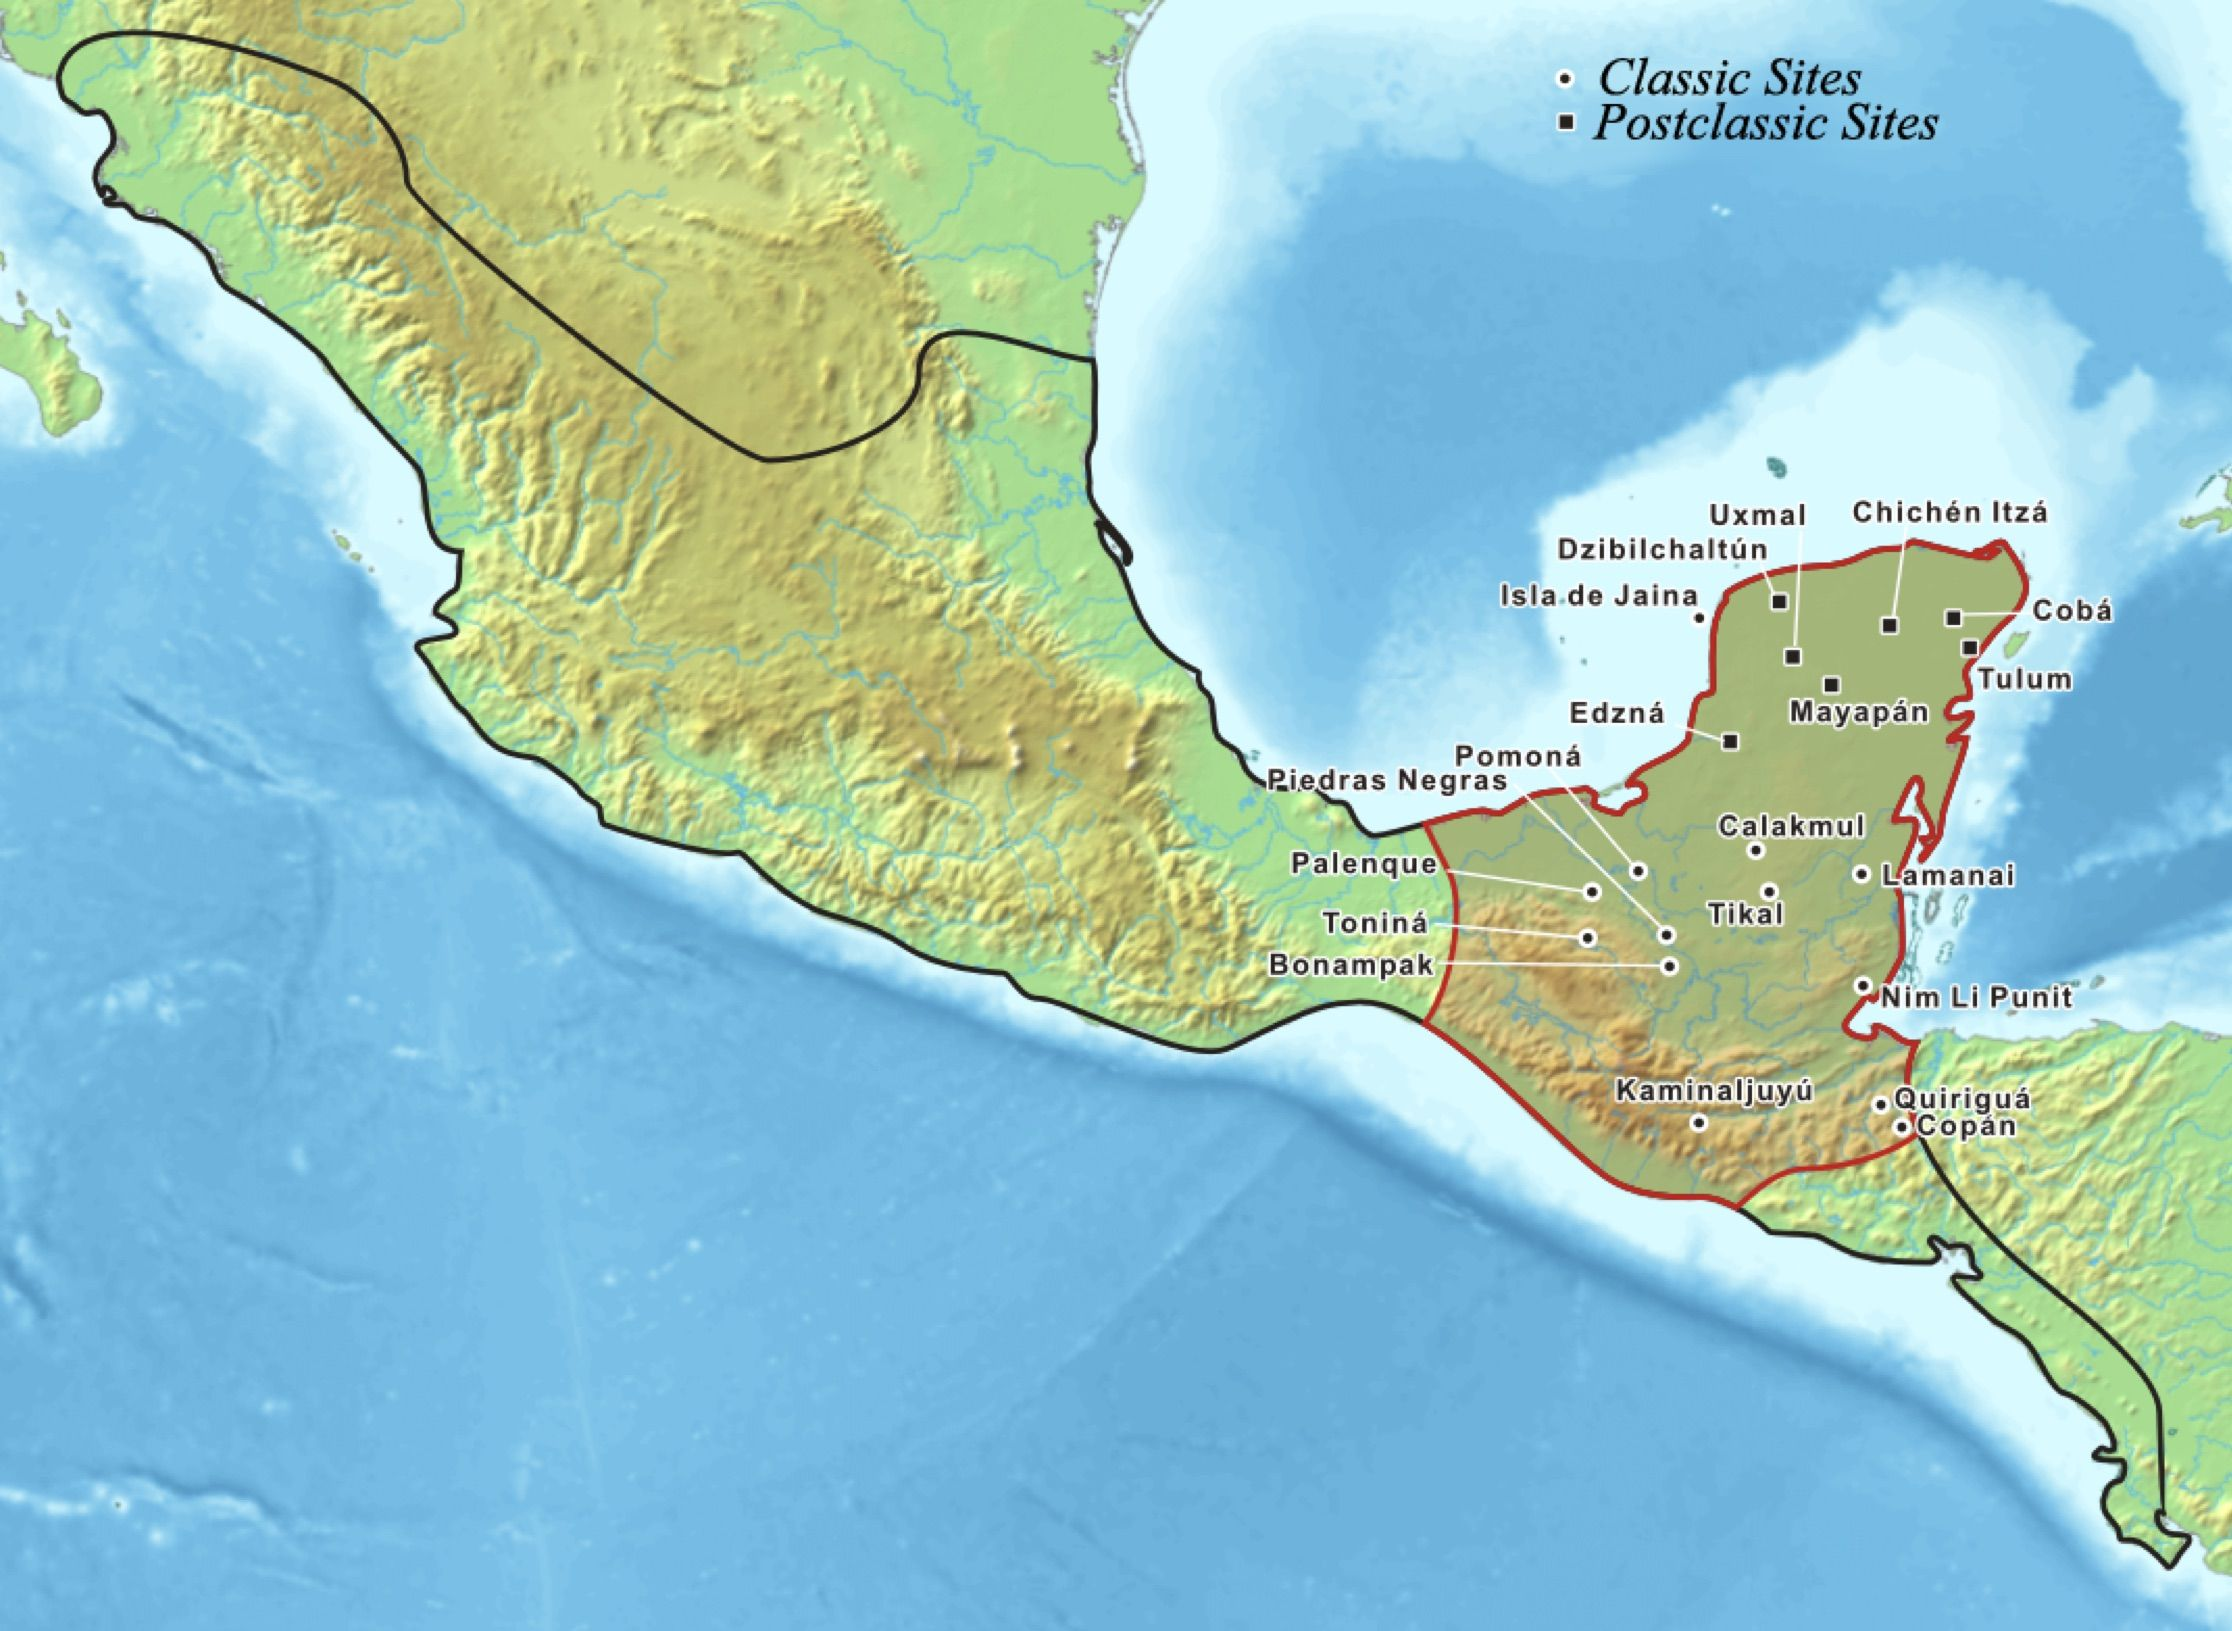 Map showing the historic Mixtec area Pre Classic